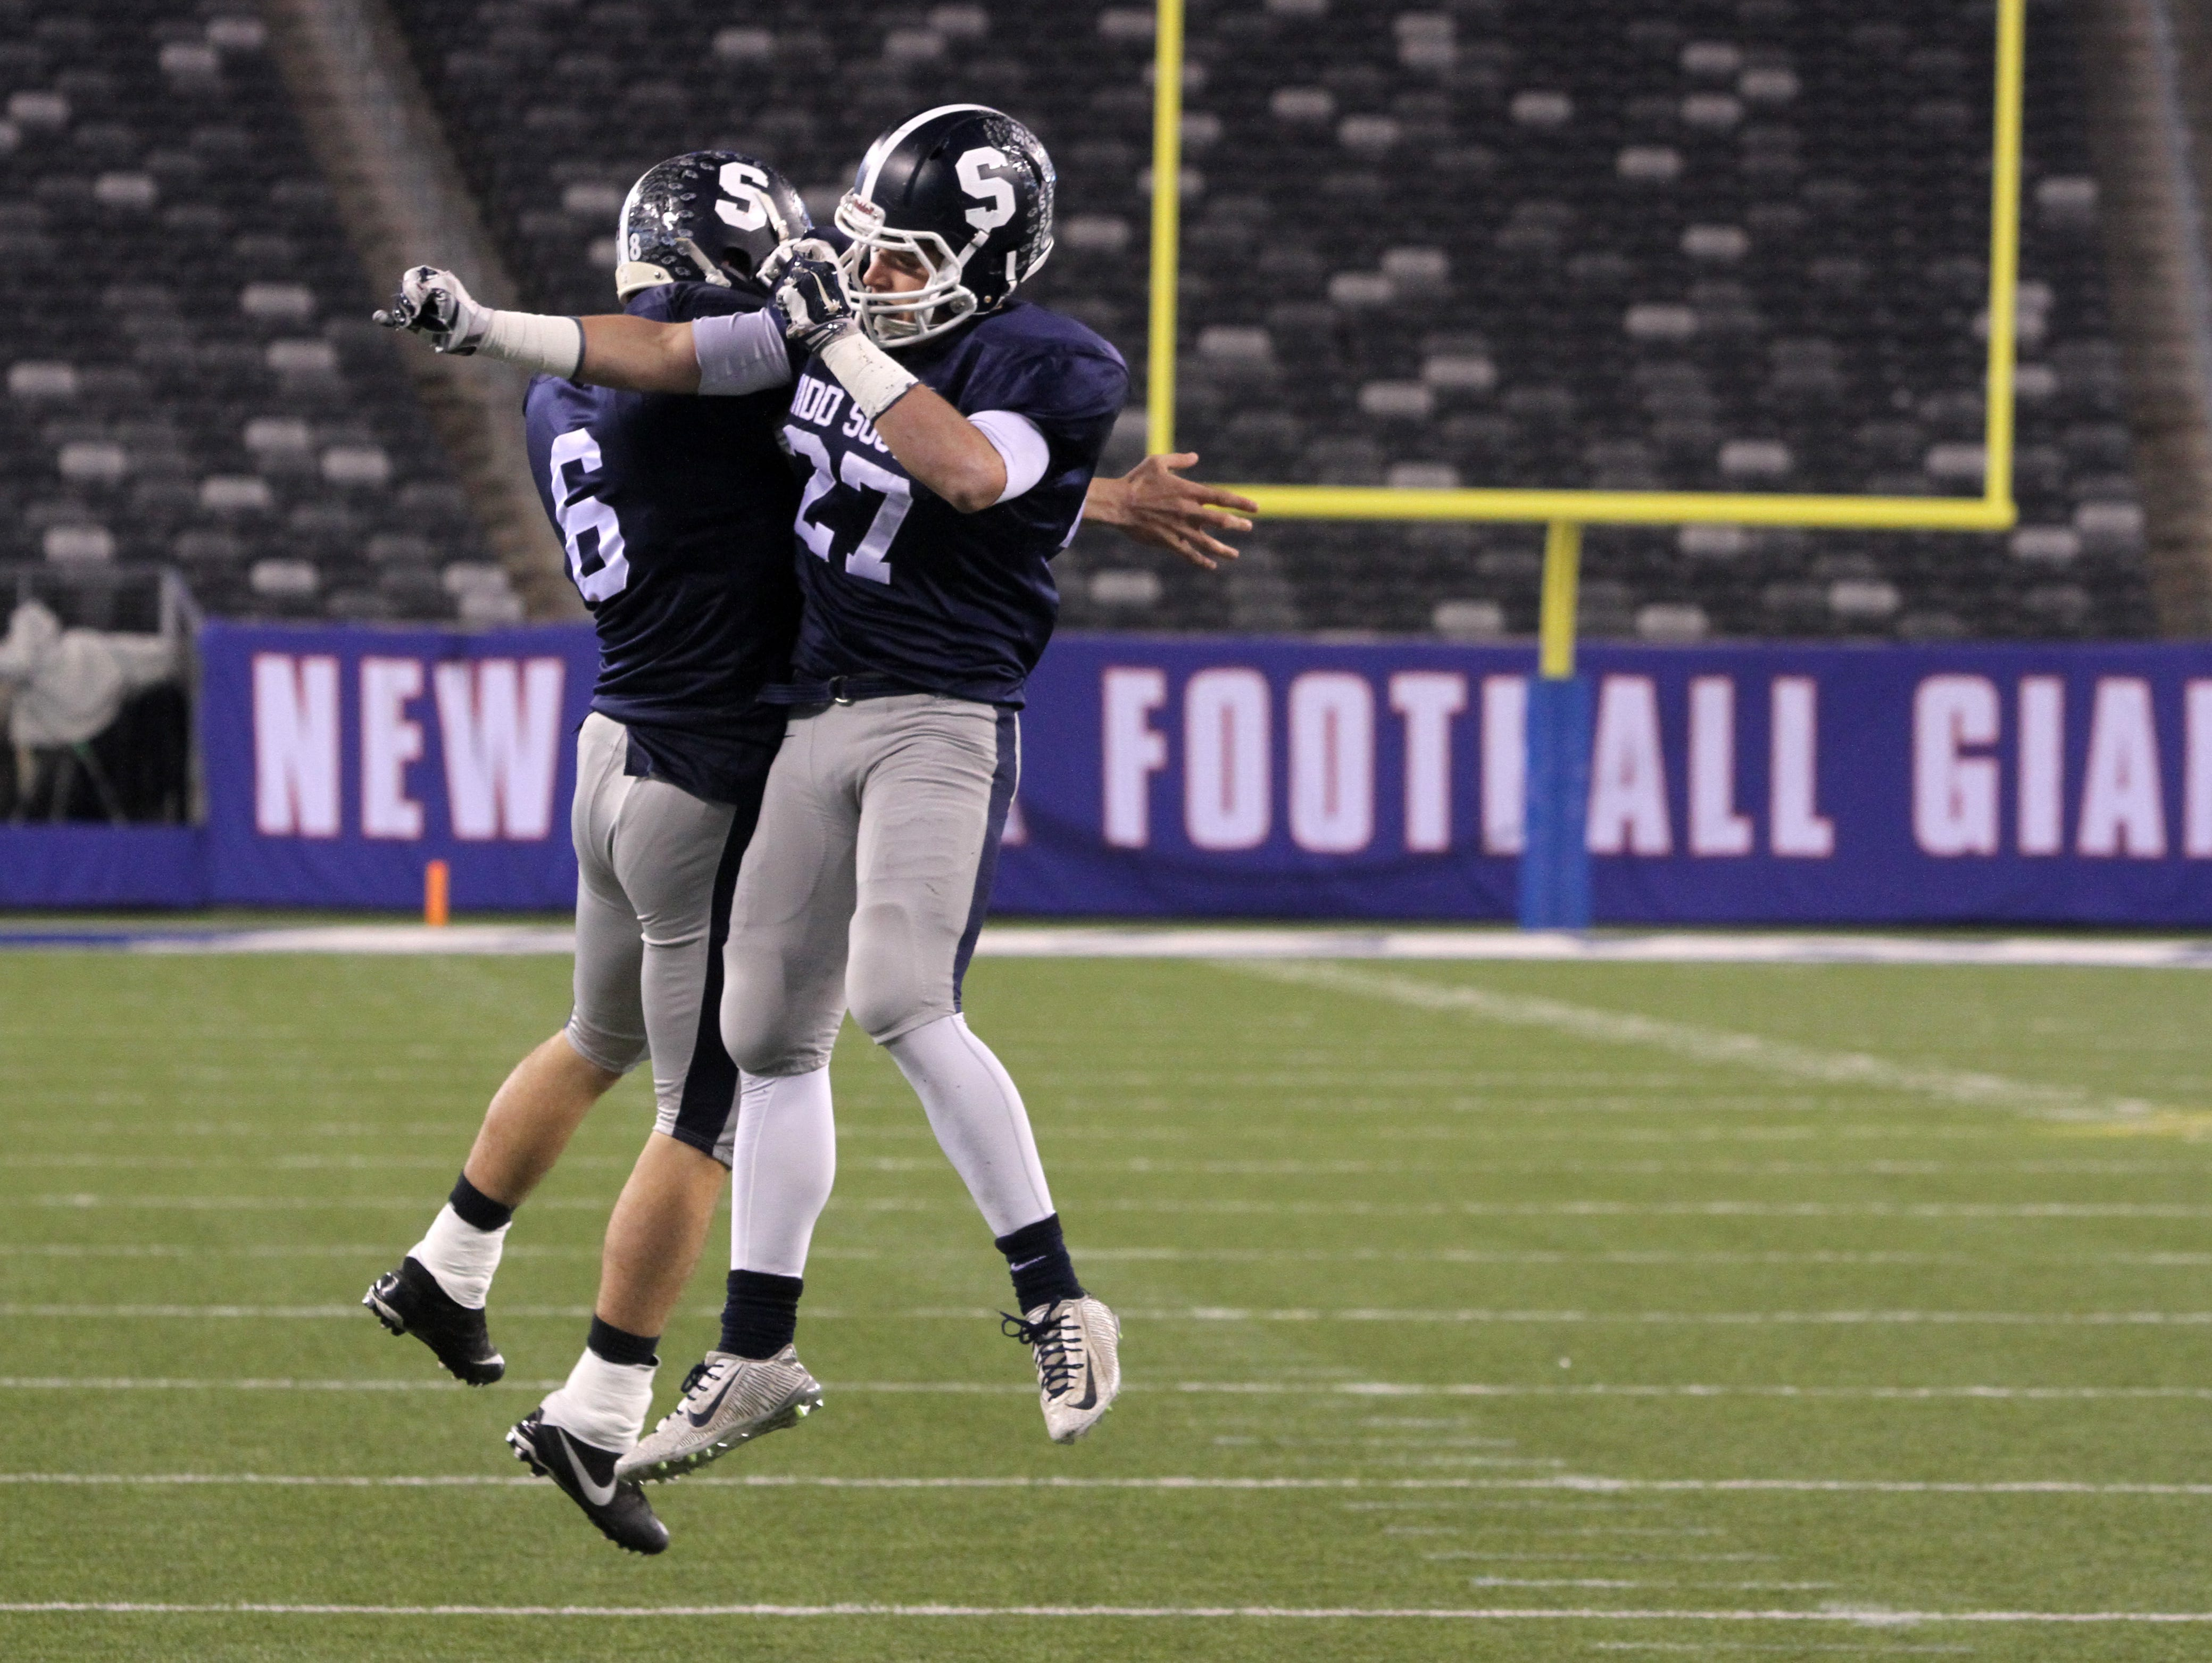 (right) Middletown South's #27 Cole Rogers celebrates his 1st quarter touchdown with (left) #6 Joel Vargas against Phillipsburg High School during the North 2 Group IV game of the 2015 NJSIAA/MetLife Stadium High School Football Championships at MetLife Stadium in East Rutherford, NJ Saturday December 5, 2015.